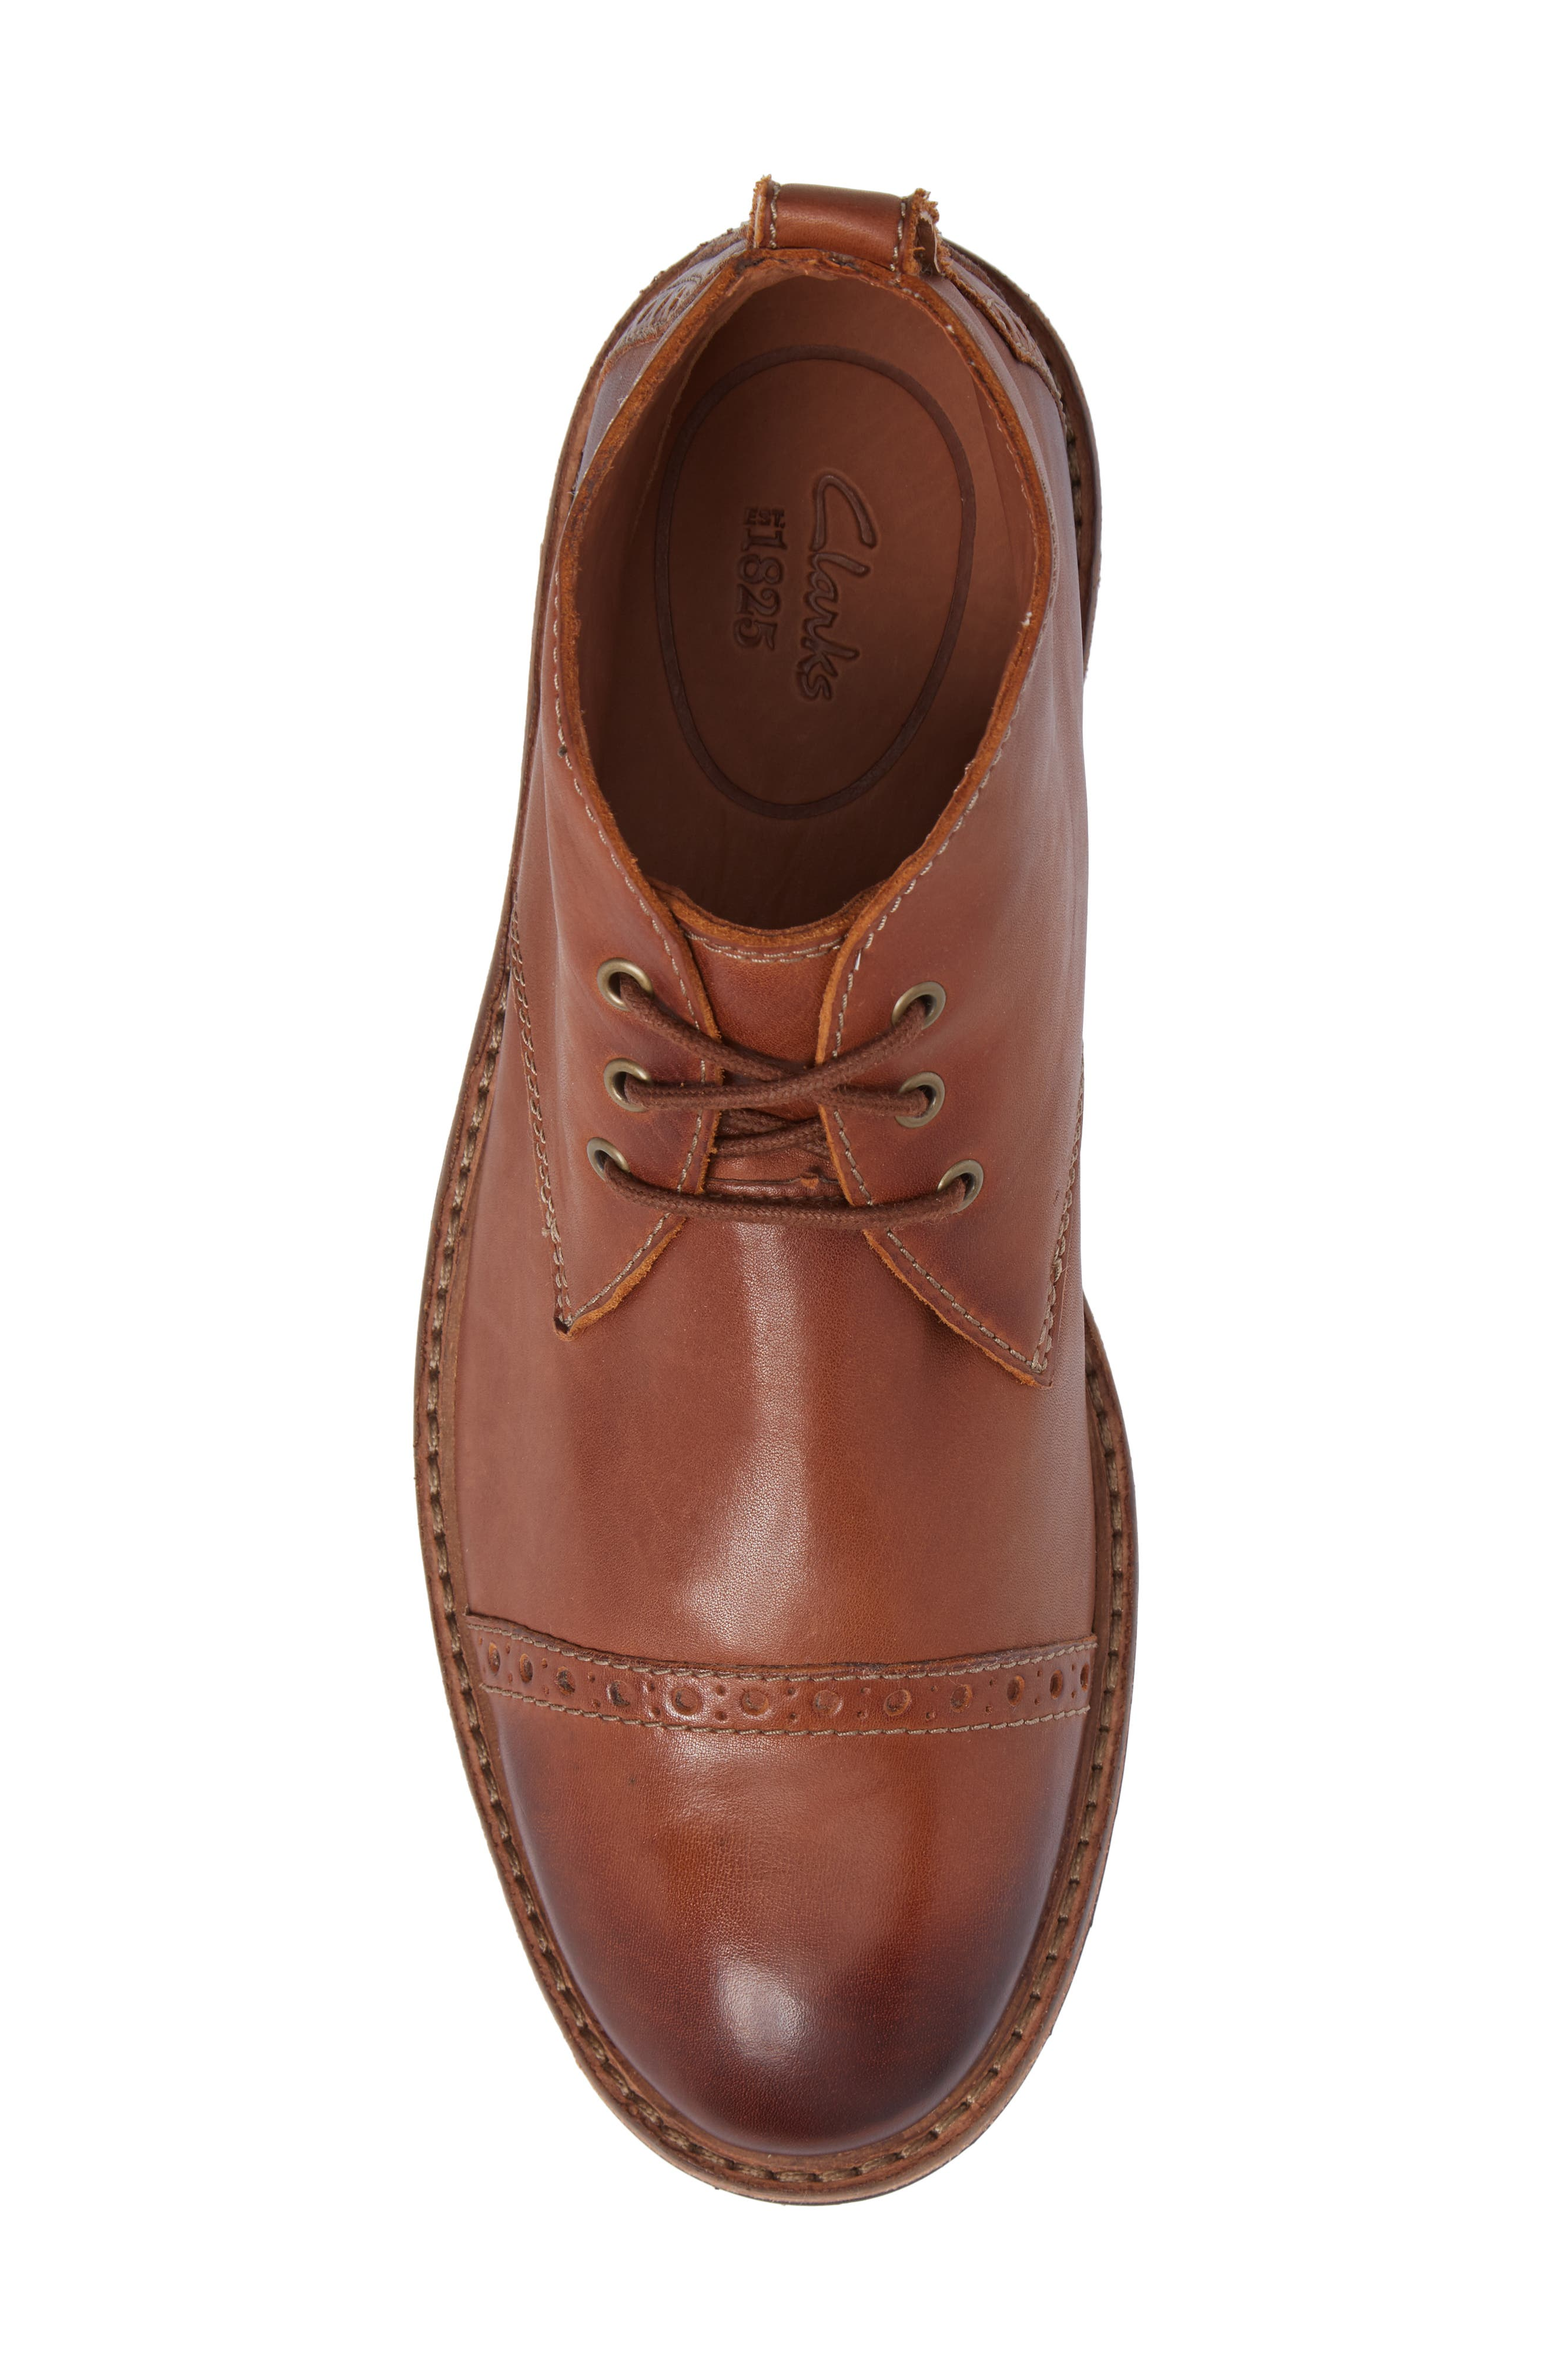 Clarkdale Water Resistant Chukka Boot,                             Alternate thumbnail 10, color,